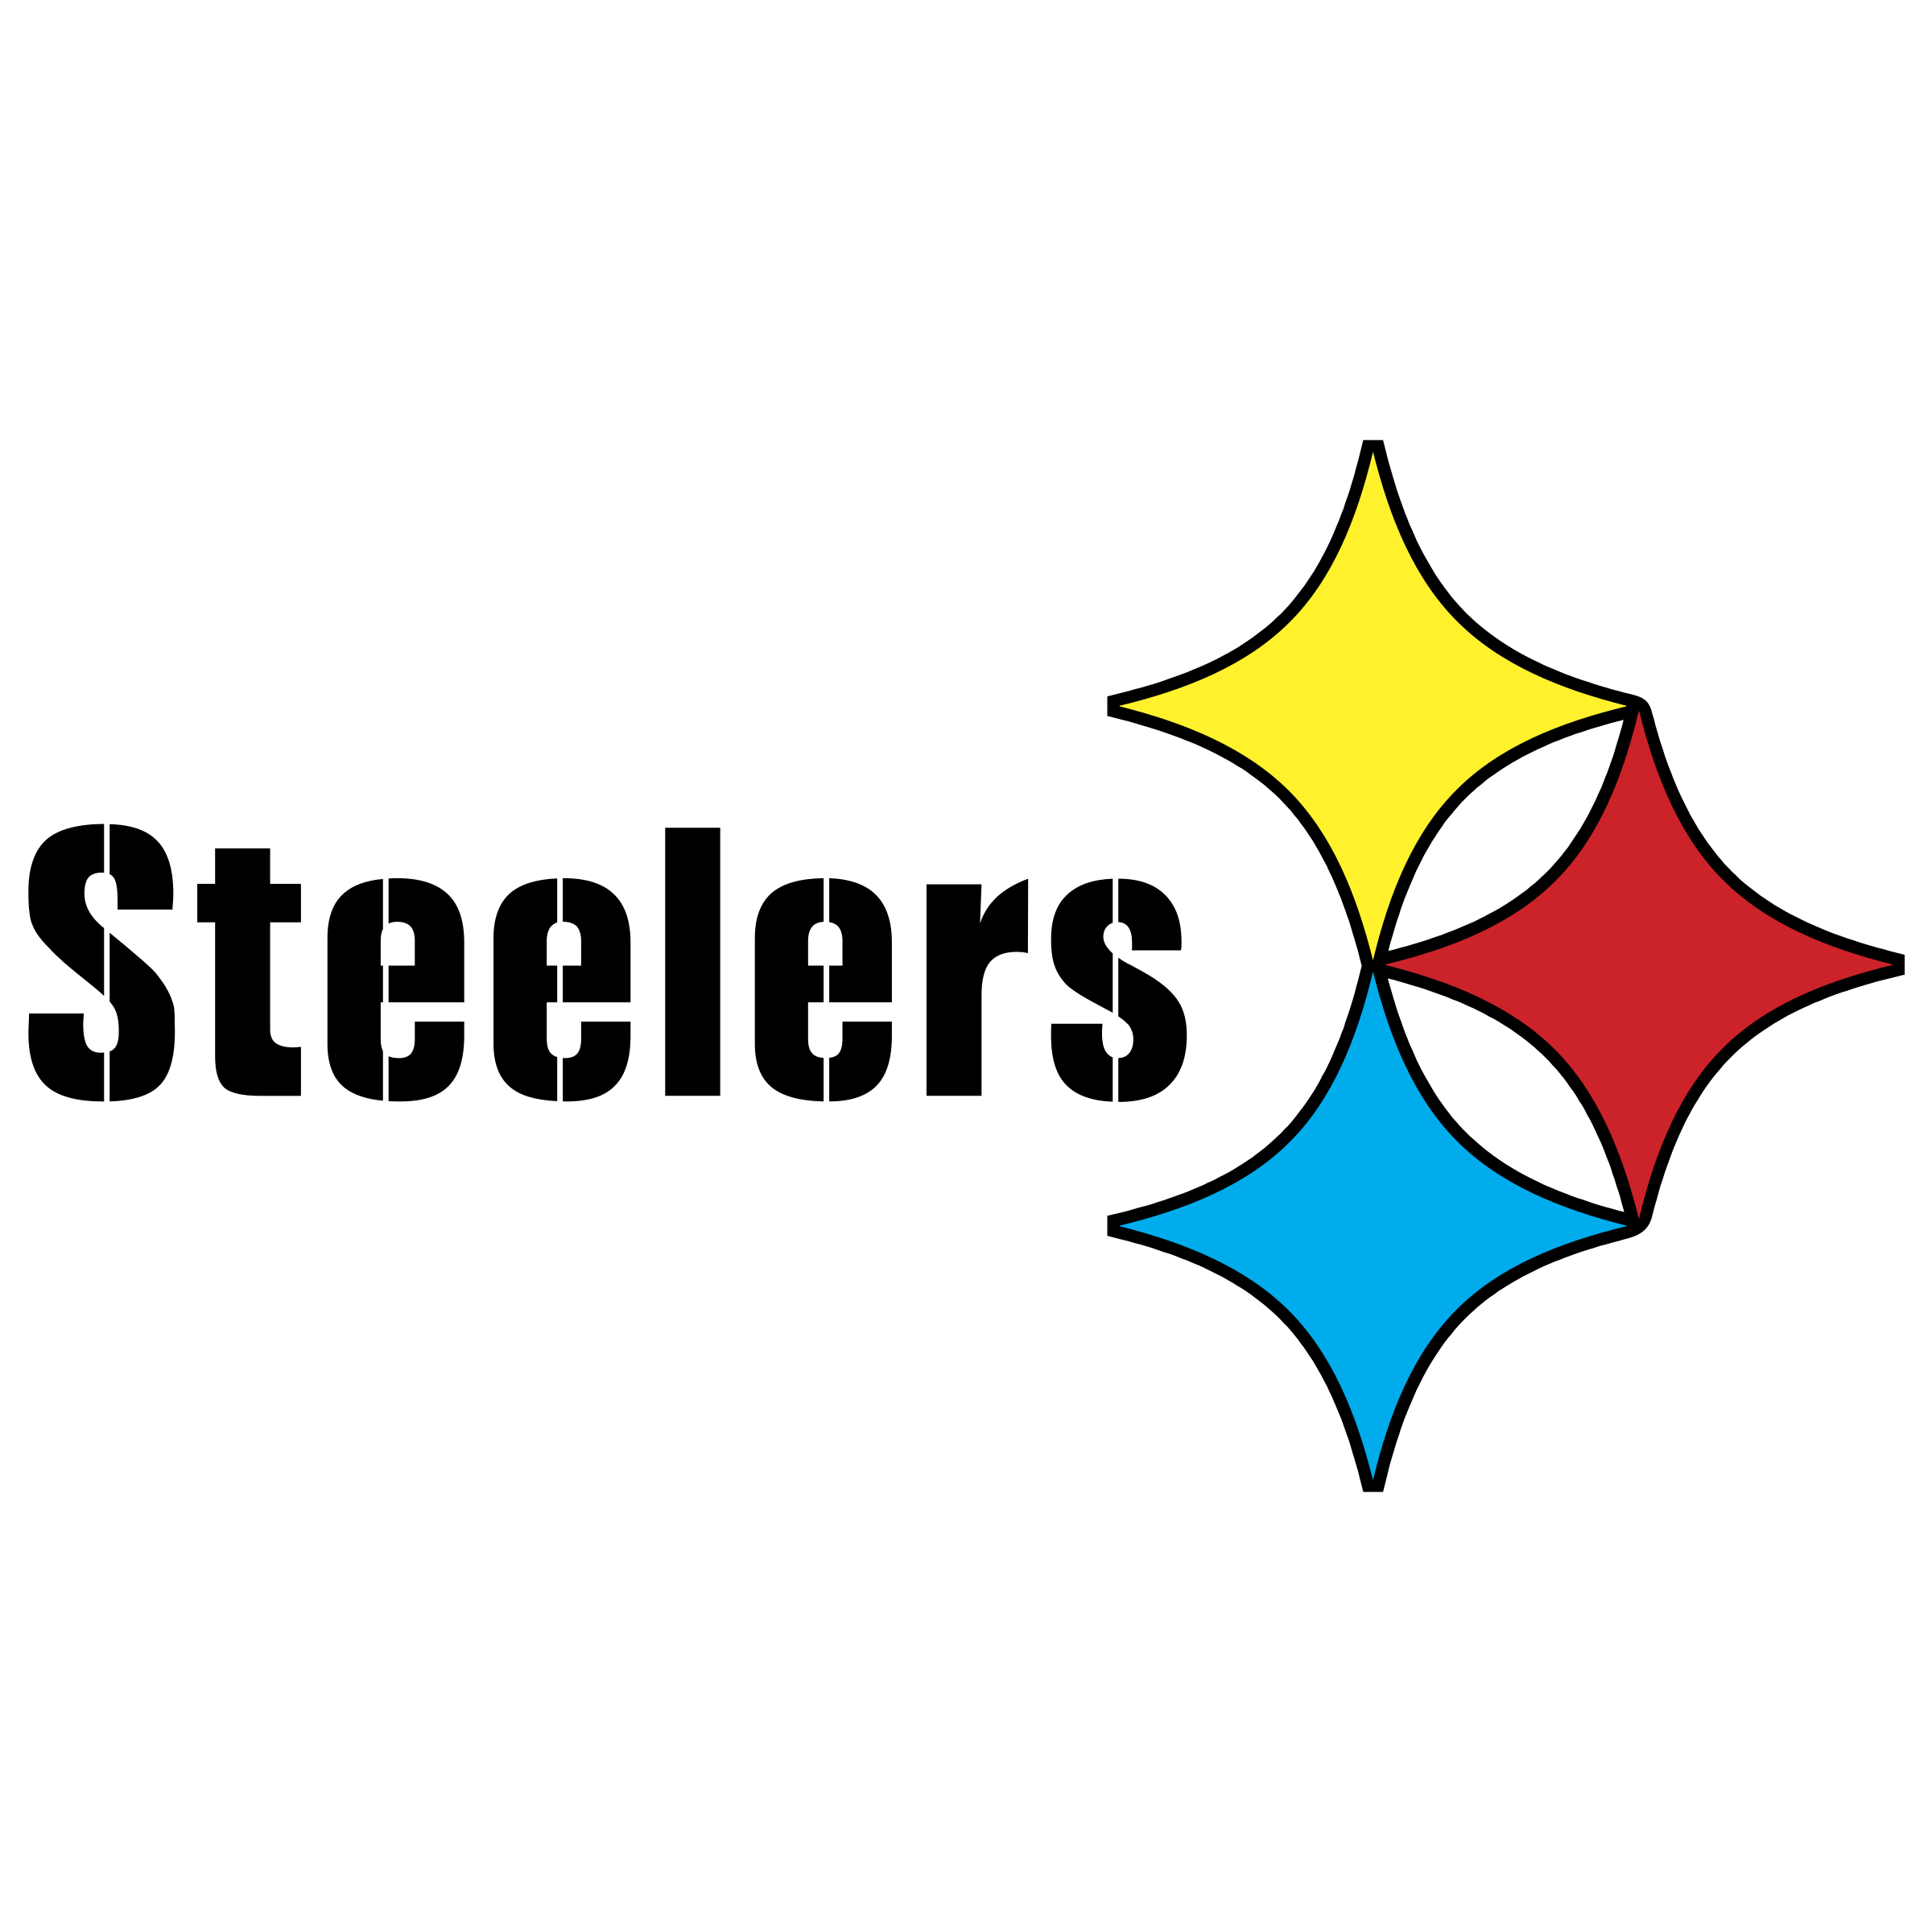 Steelers vector silhouette. Collection of free svg